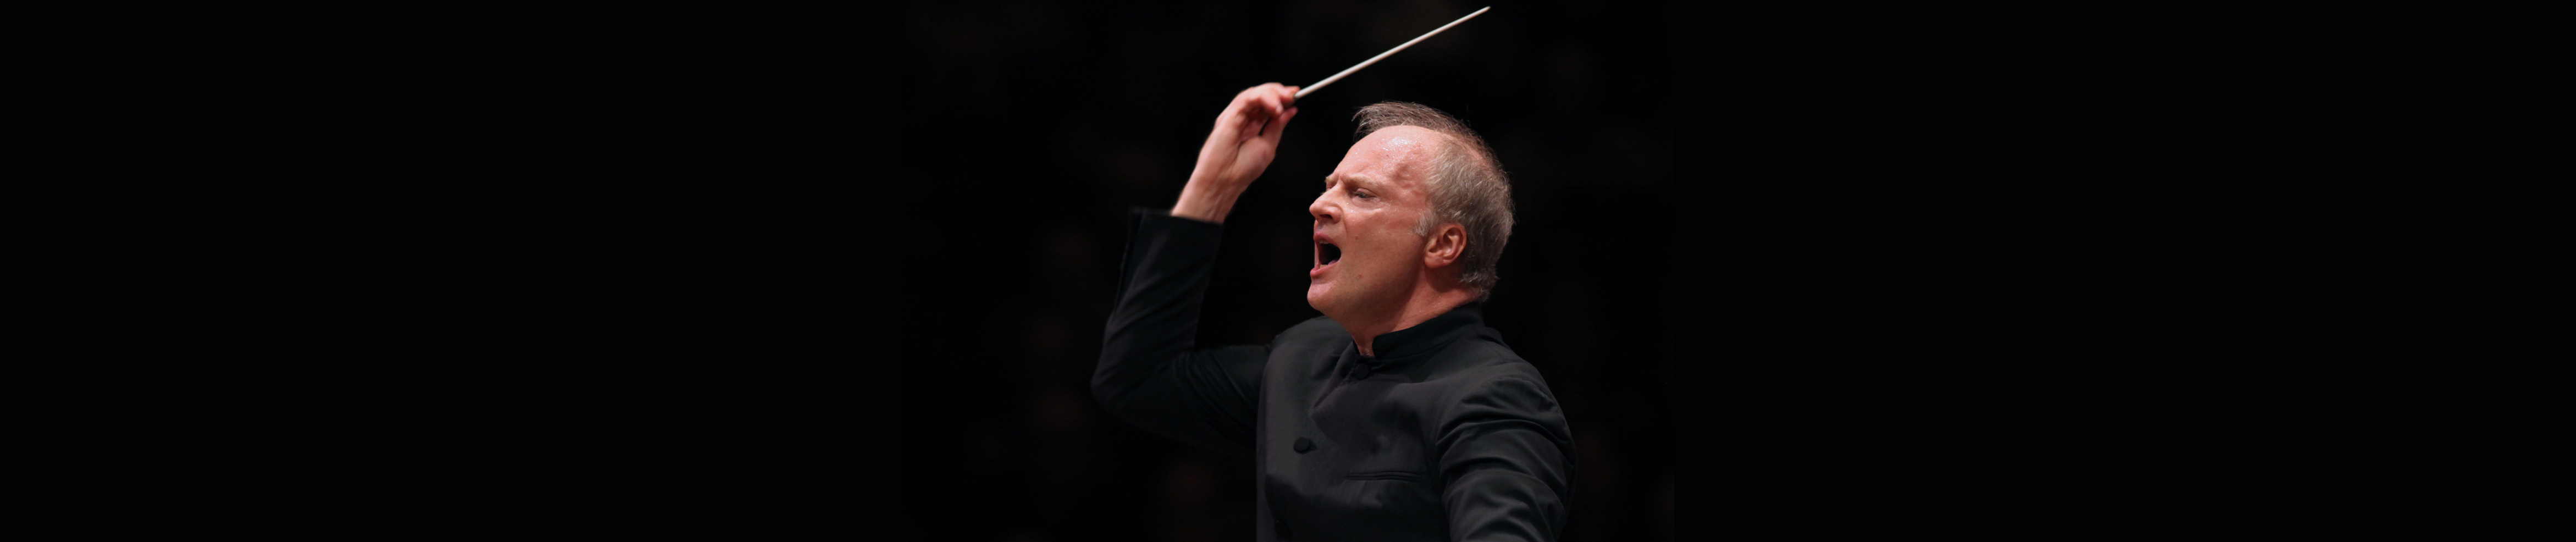 Gianandrea Noseda conducts Shostakovich – With Nicola Benedetti